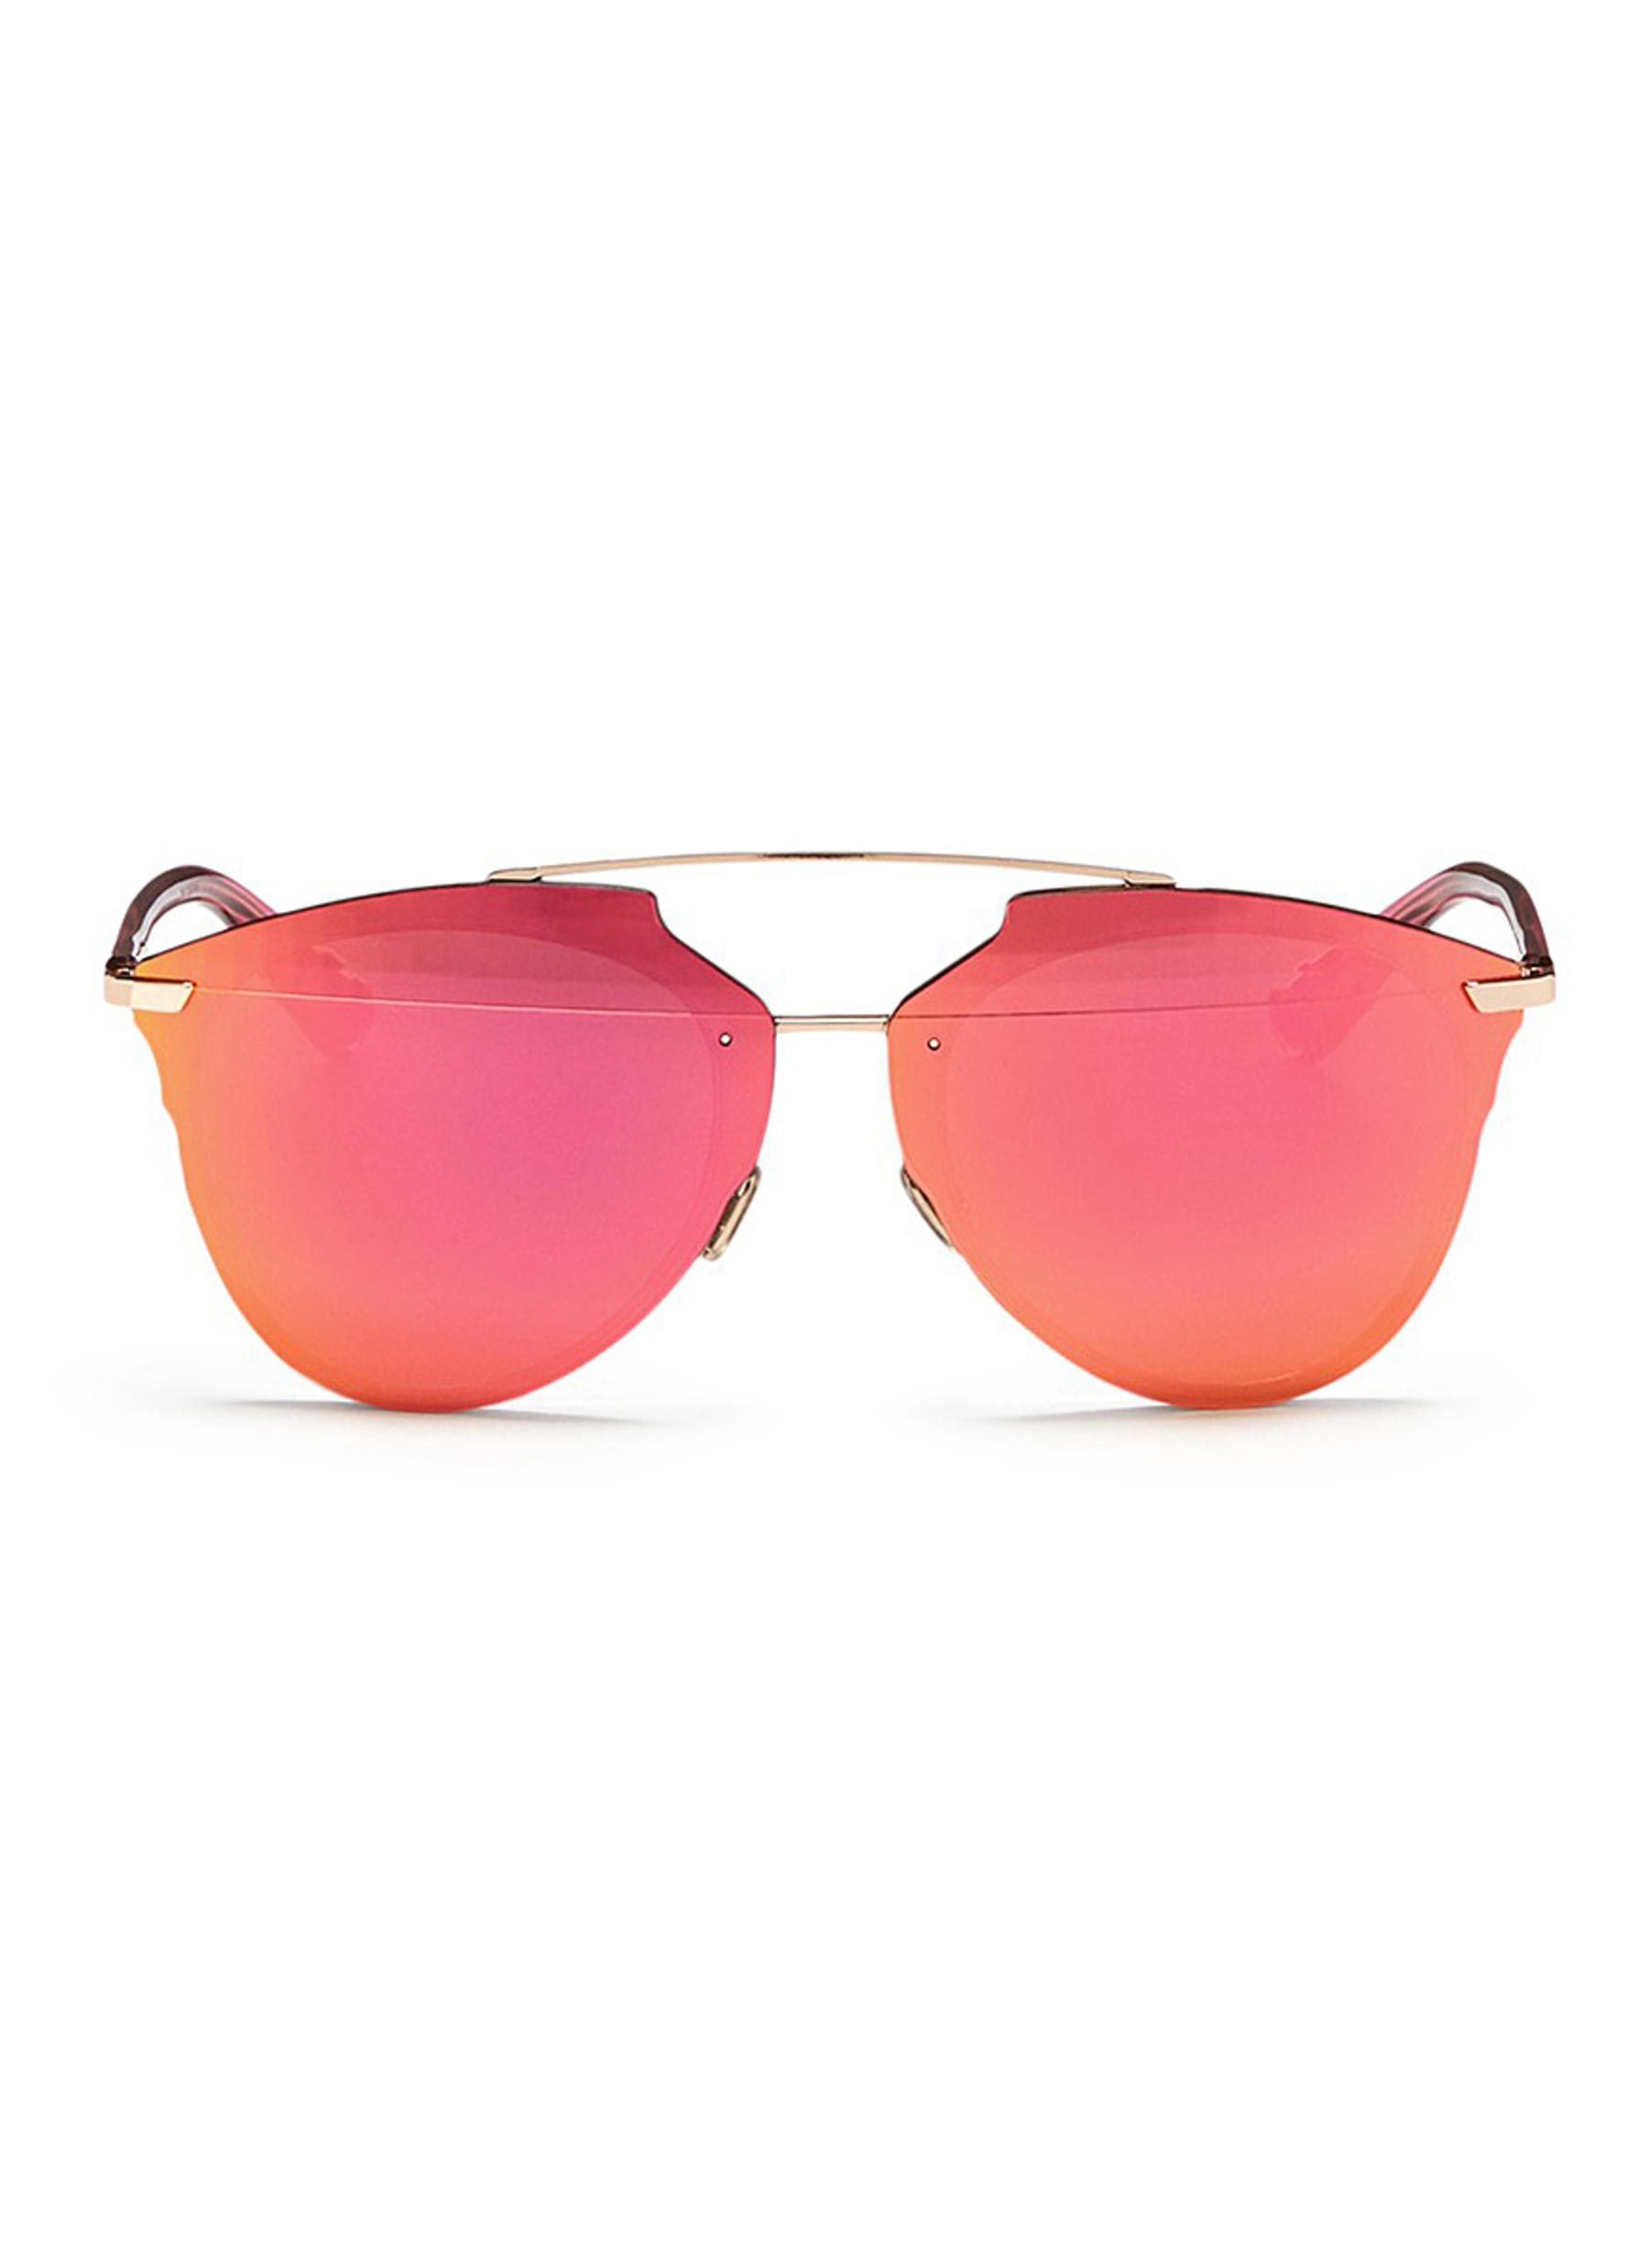 Dior Reflected prism effect mounted mirror lens sunglasses by Dior